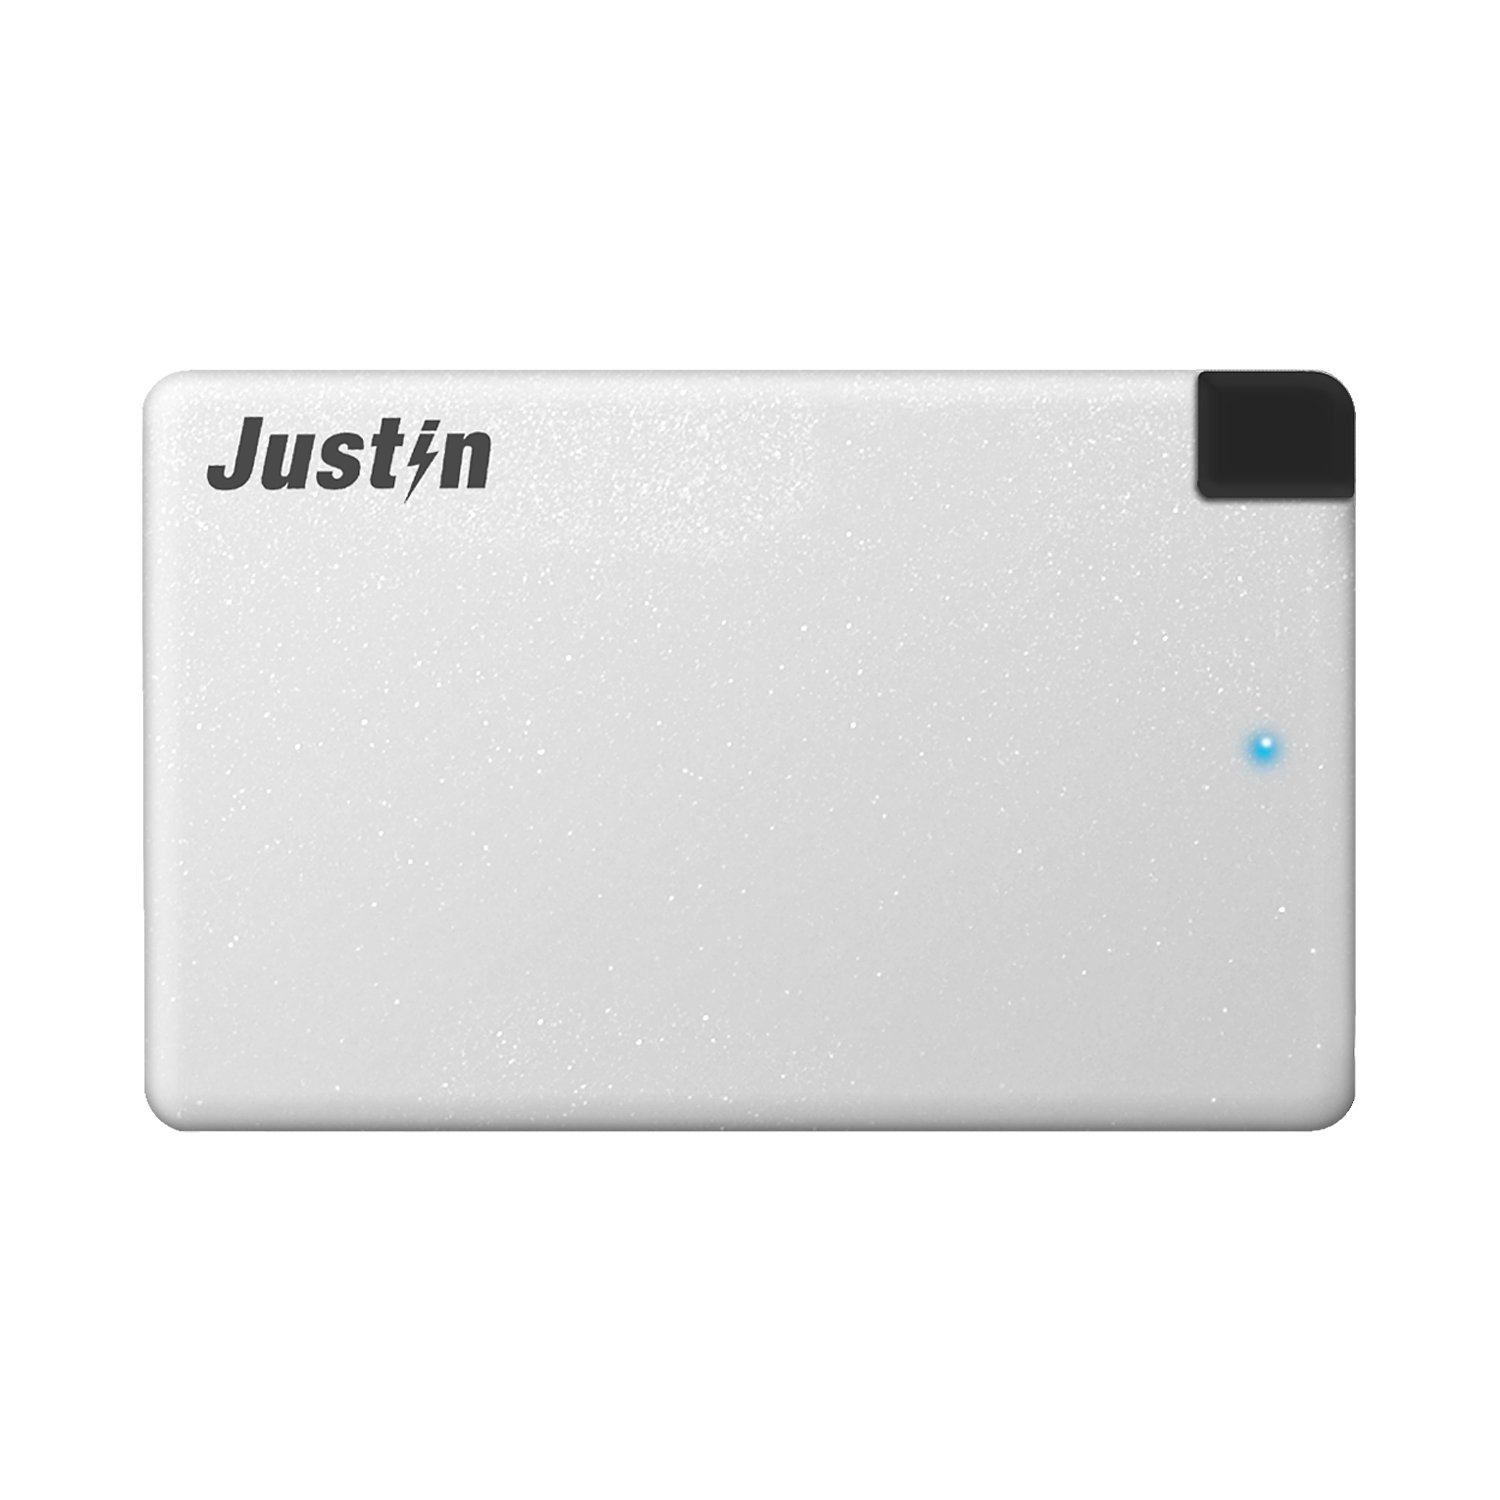 Justin Power 2,500 mAh Slim Power Bank with Built-In Micro-USB Cable, Silver